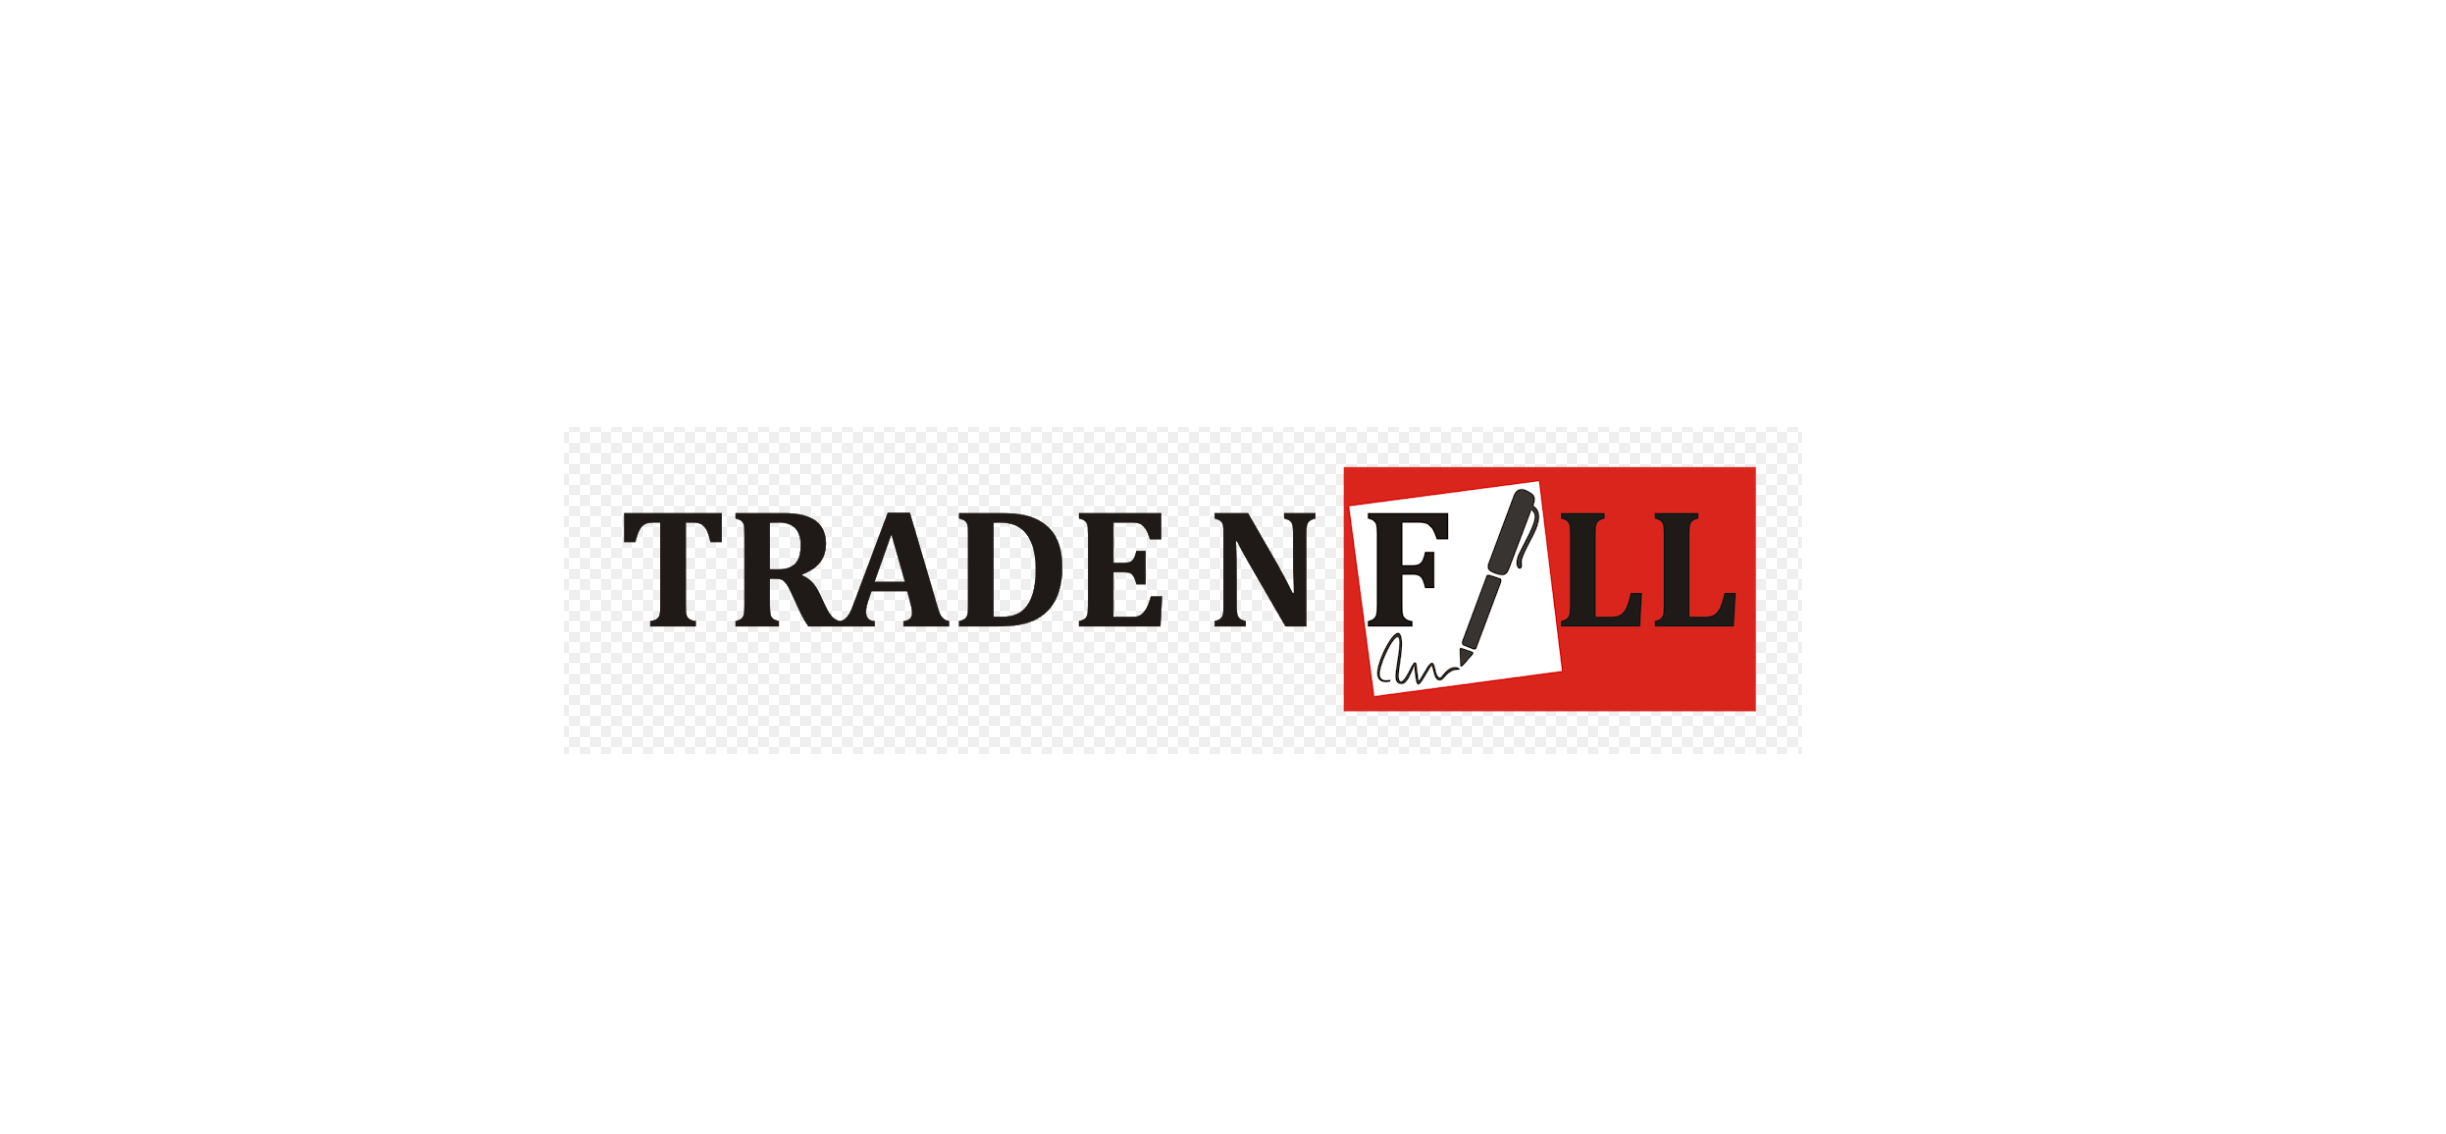 Trade N Fill Logo in 2 mb size